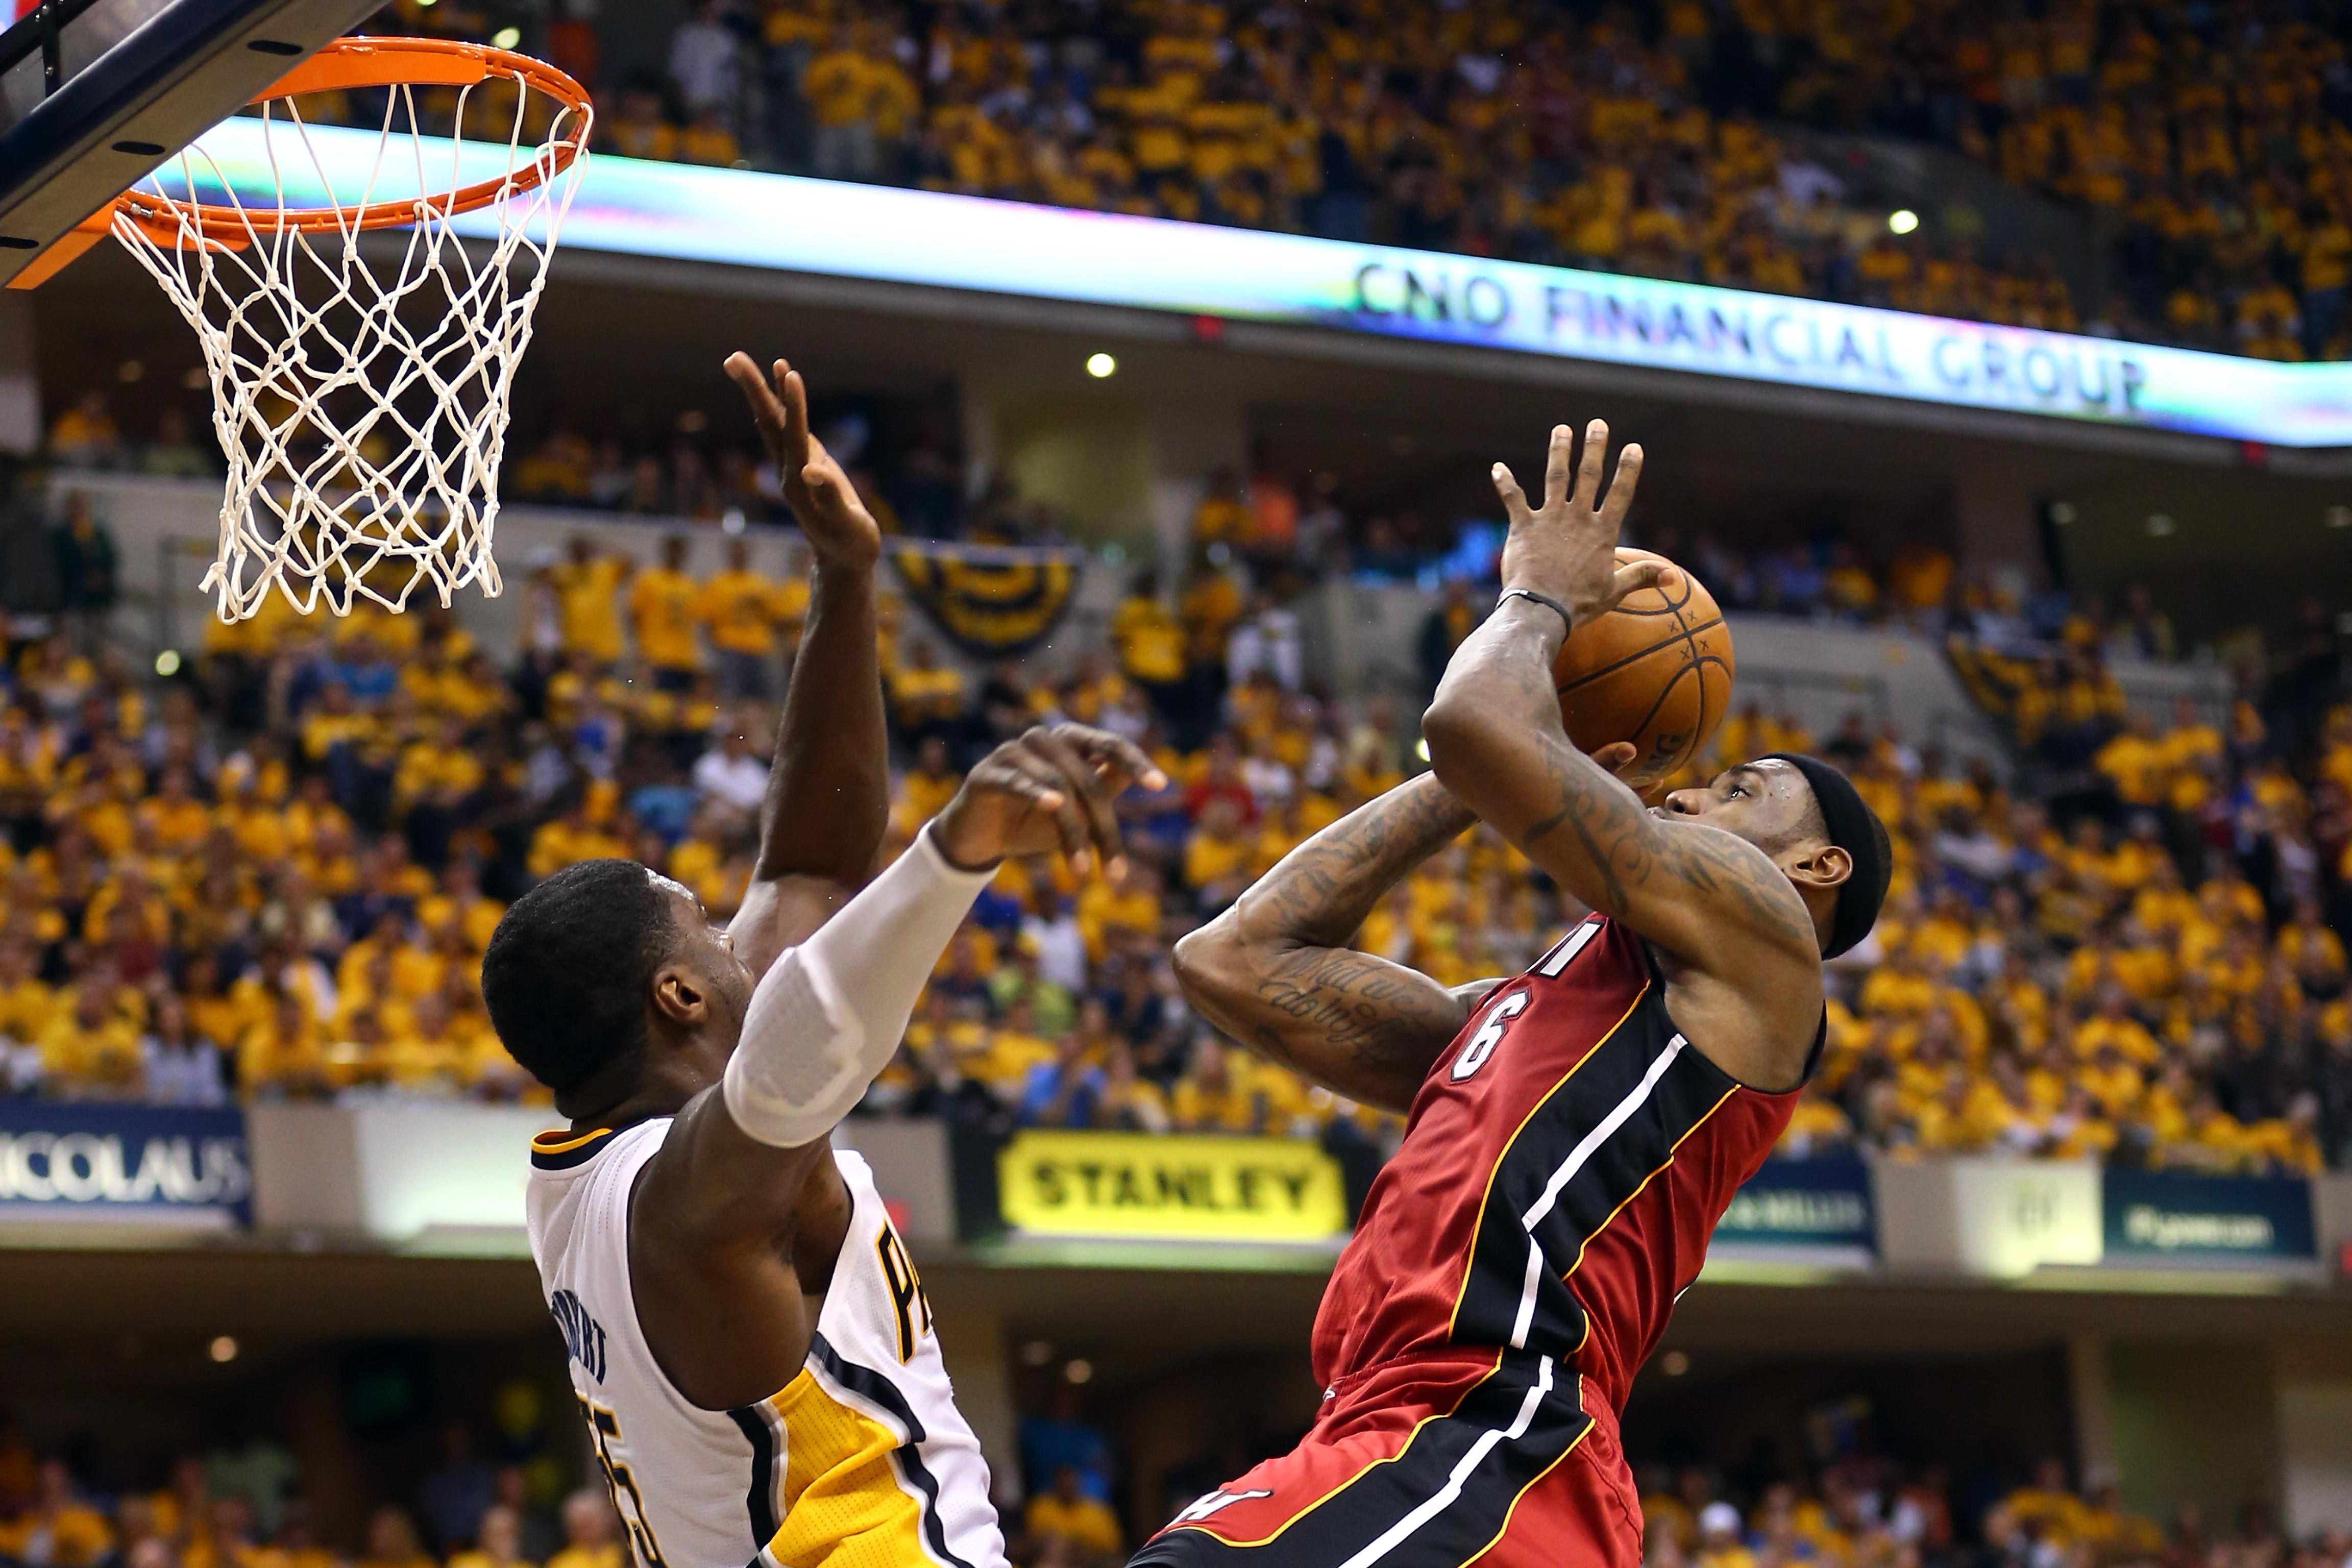 LeBron James, No. 6 of the Miami Heat, dunks the ball against Roy Hibbert, No. 55 of the Indiana Pacers, in Game 6 of the Eastern Conference Finals during the 2013 NBA Playoffs at Bankers Life Fieldhouse on June 1, 2013, in Indianapolis.